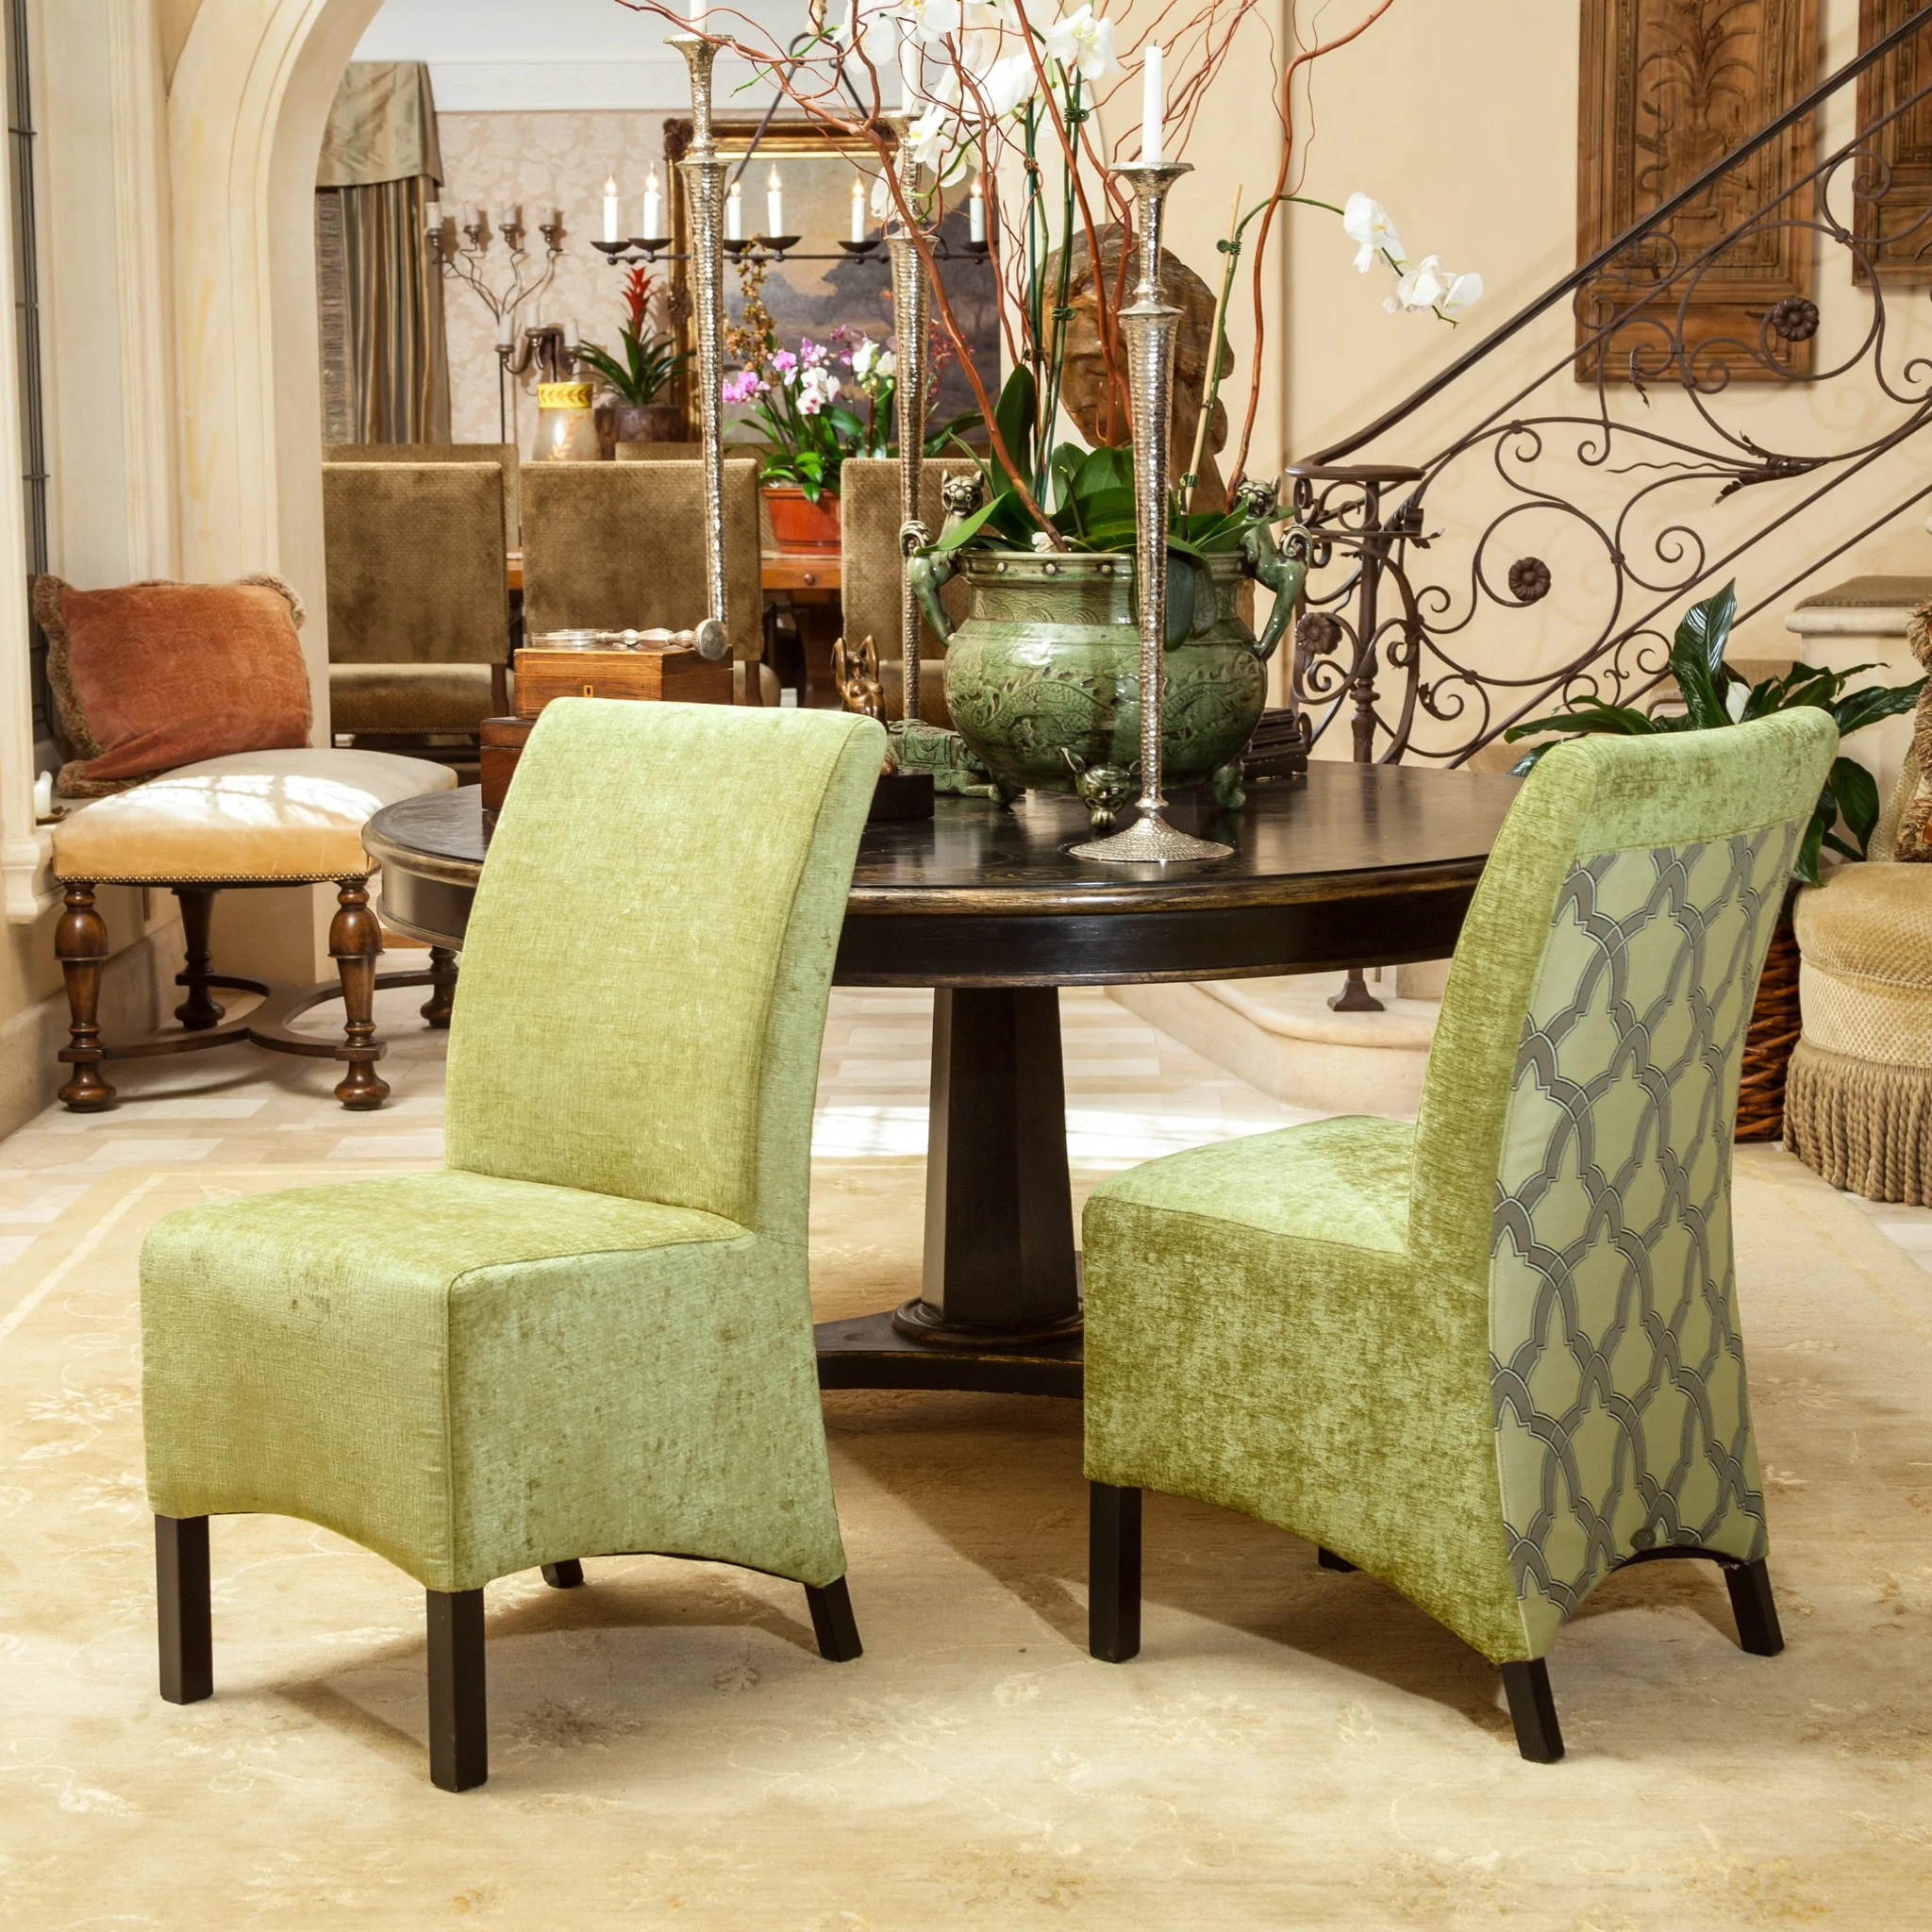 chair covers sage green desk nz slipcovers for club chairs and ottomans white